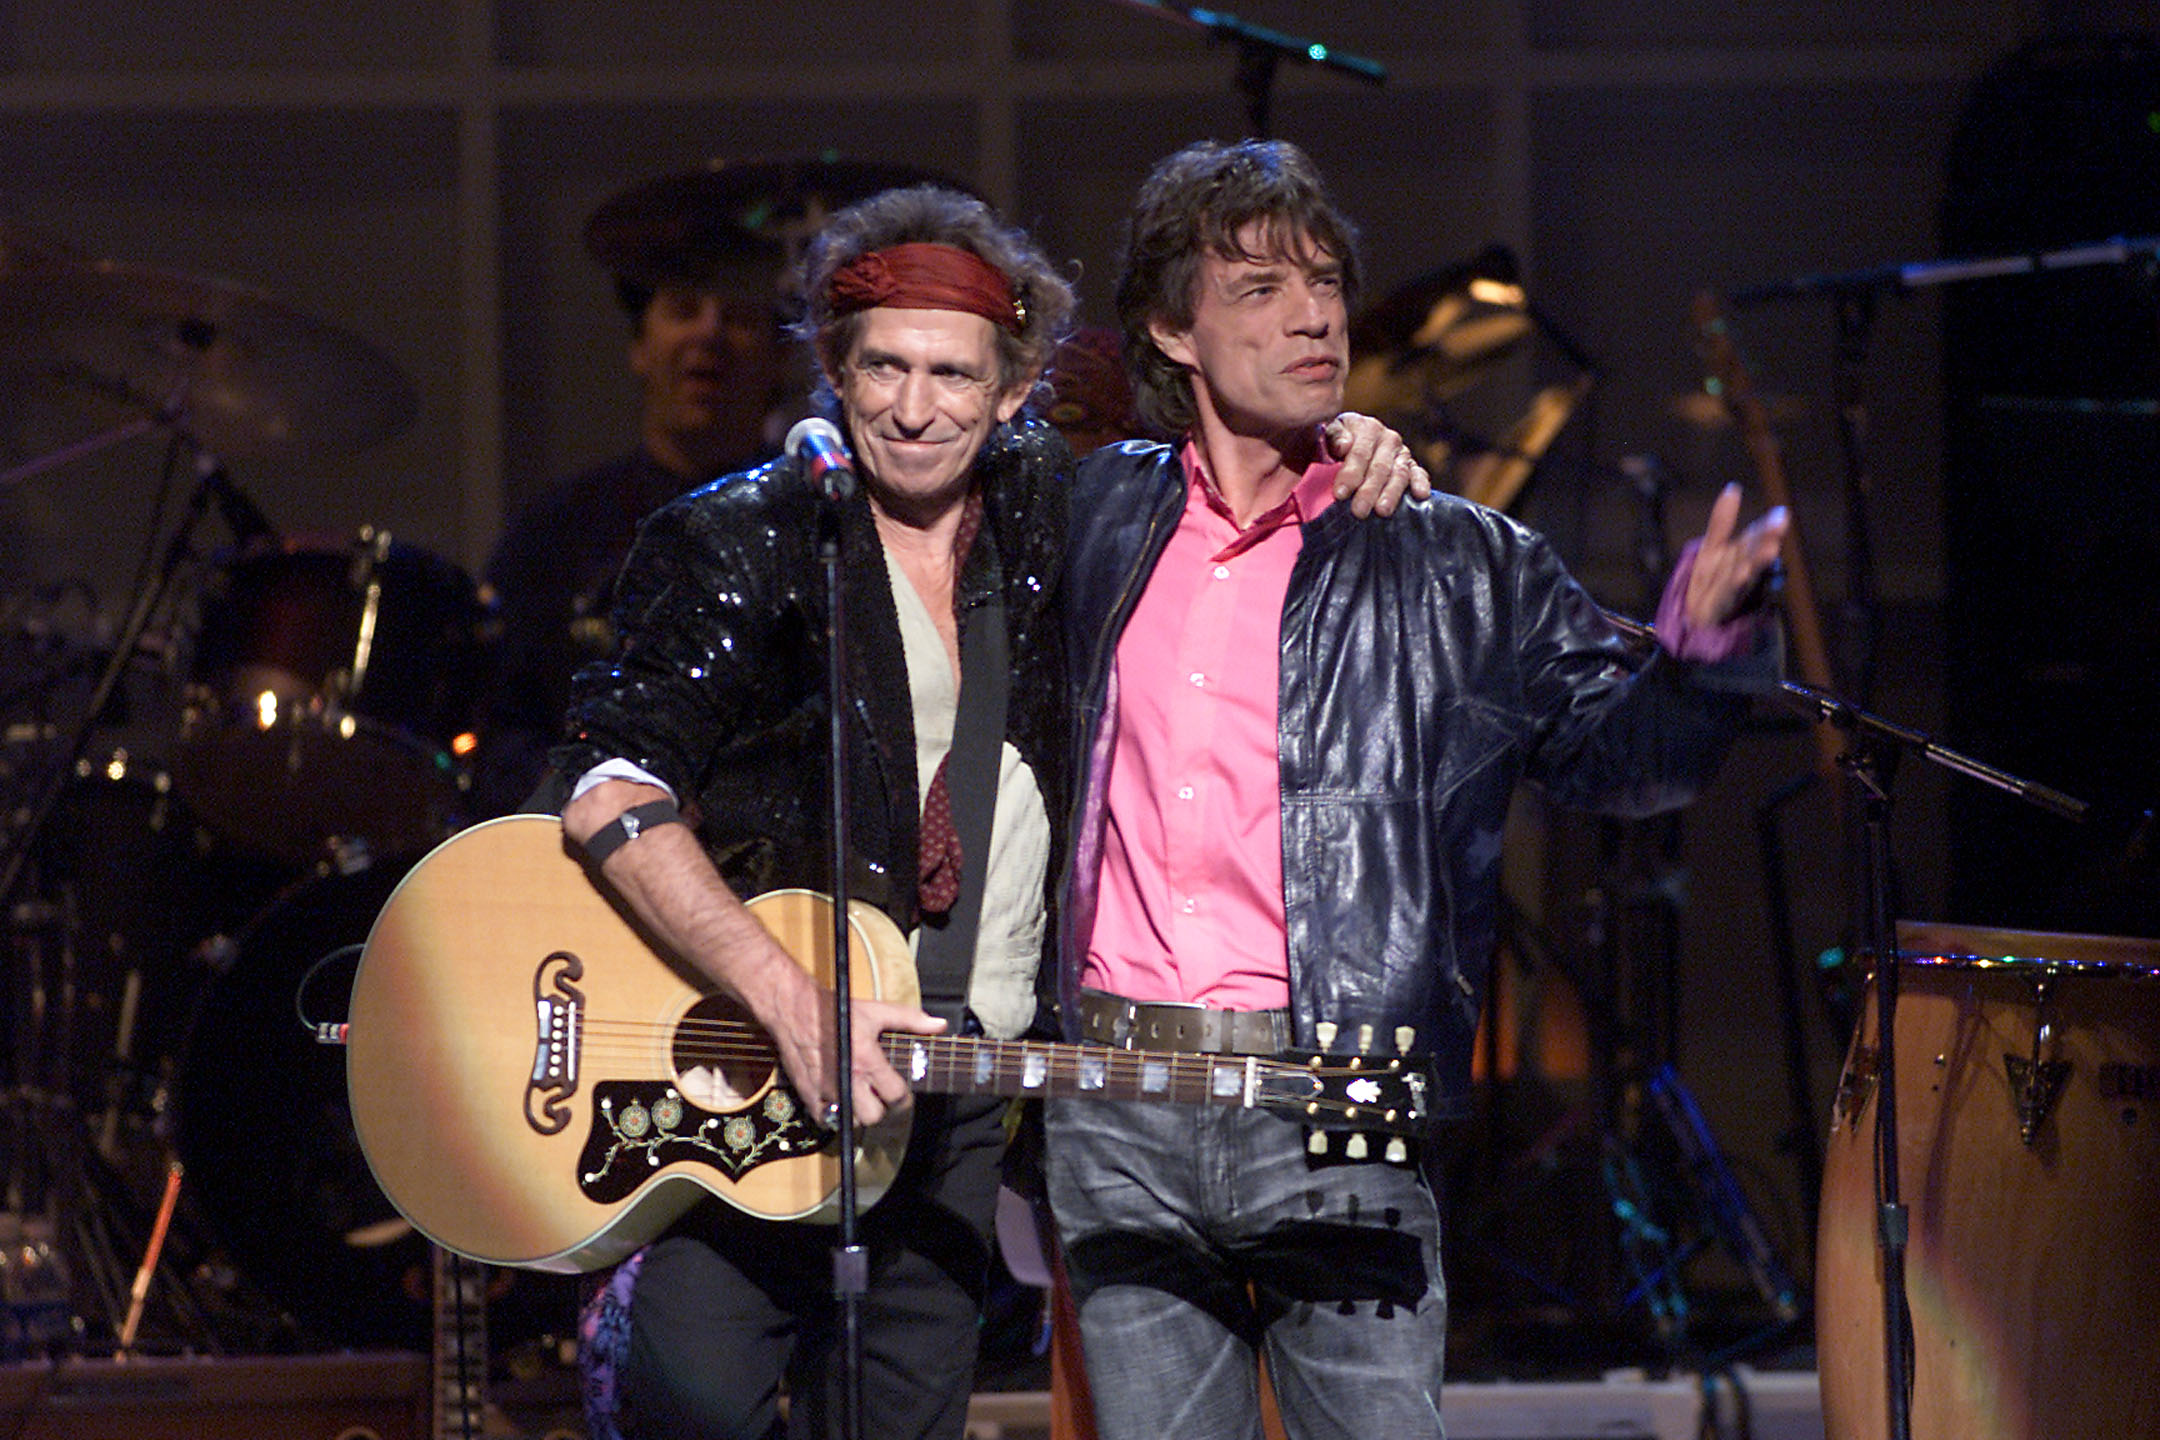 Keith Richards and Mick Jagger of The Rolling Stones onstage performing at The Concert for New York City to benefit the victims of the World Trade Center disaster.  October 20, 2001 (Photo: Scott Gries/ImageDirect)